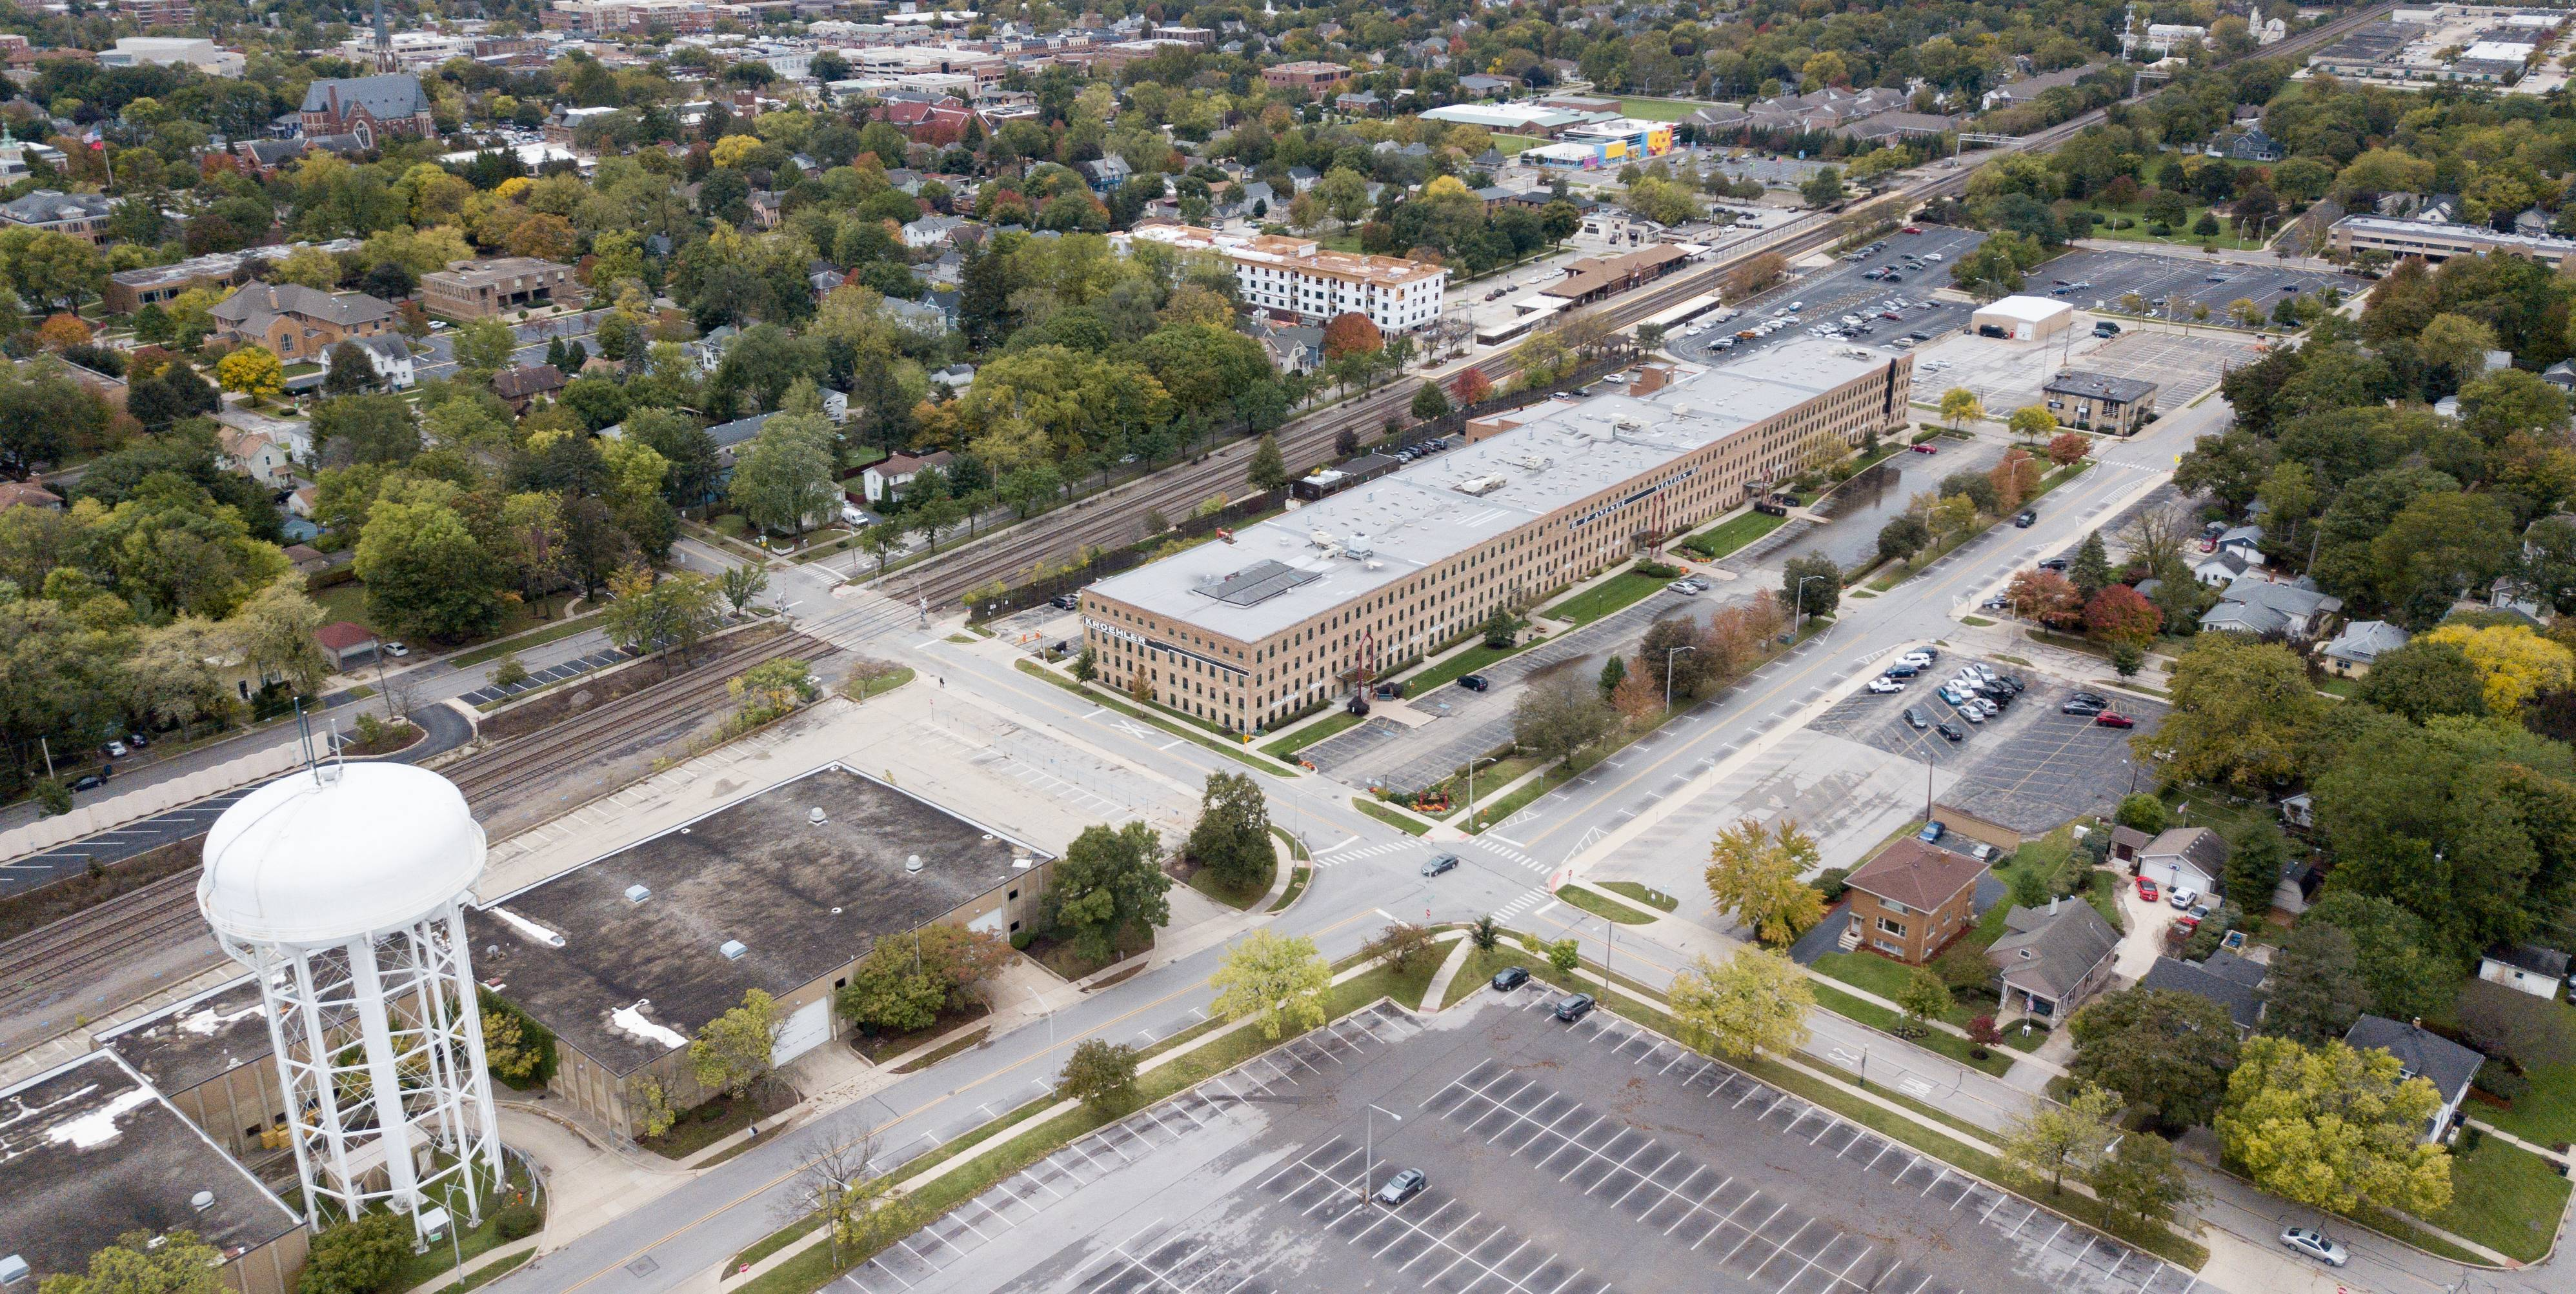 One of the biggest issues of the new year in Naperville will involve the re-imagining of the 5th Avenue corridor, which includes 13 acres of city-owned land by the Naperville Metra station.